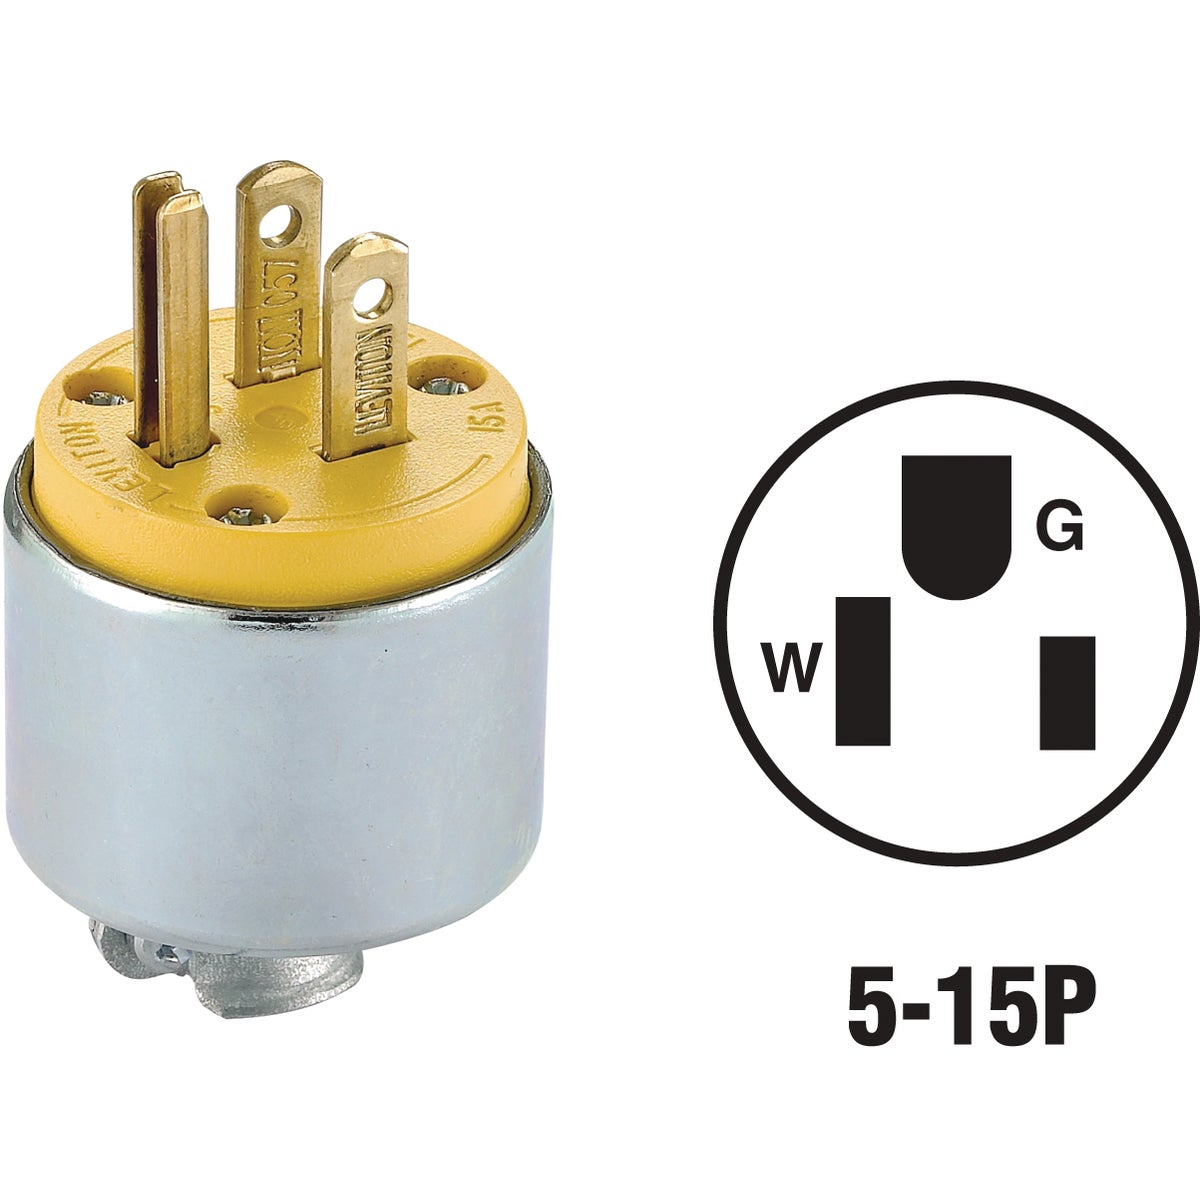 YEL ARMORED PLUG - 515PA by Leviton Mfg Co